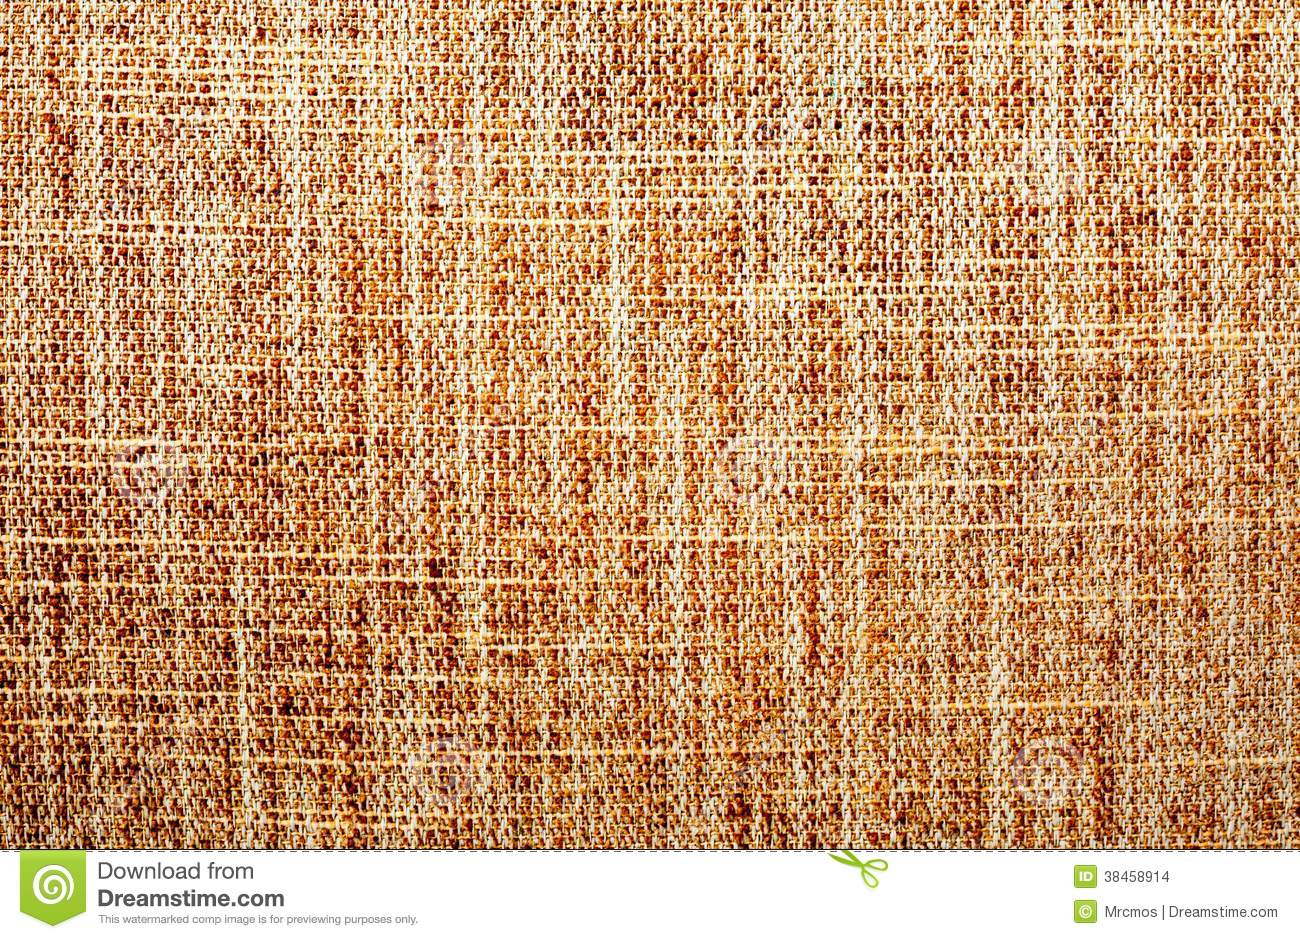 Rough Fabric Canvas Texture, Pattern, Background. Textured, Material.